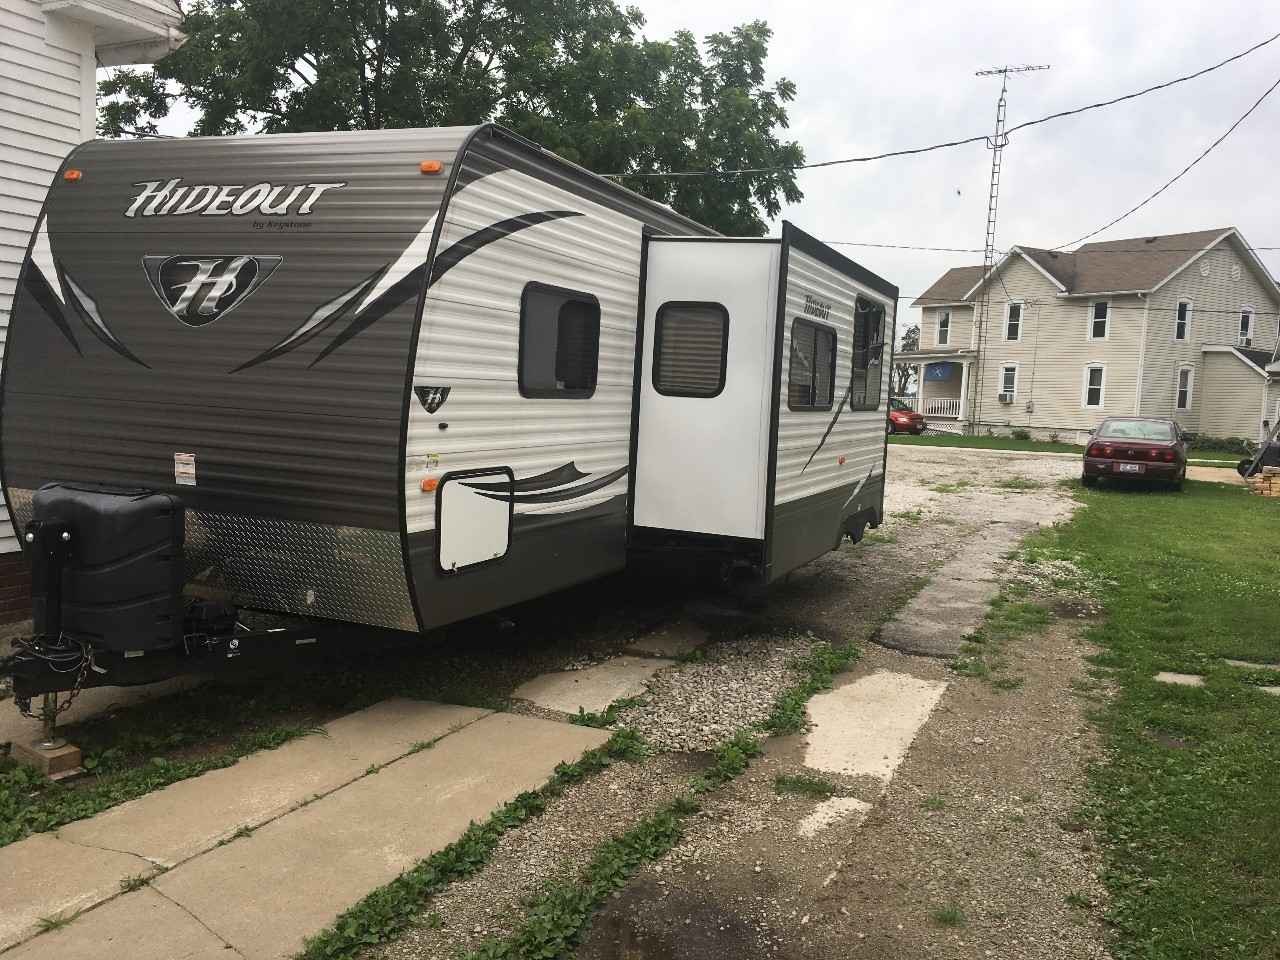 2016 Used Keystone Hideout 27dbs Travel Trailer In Ohio Oh